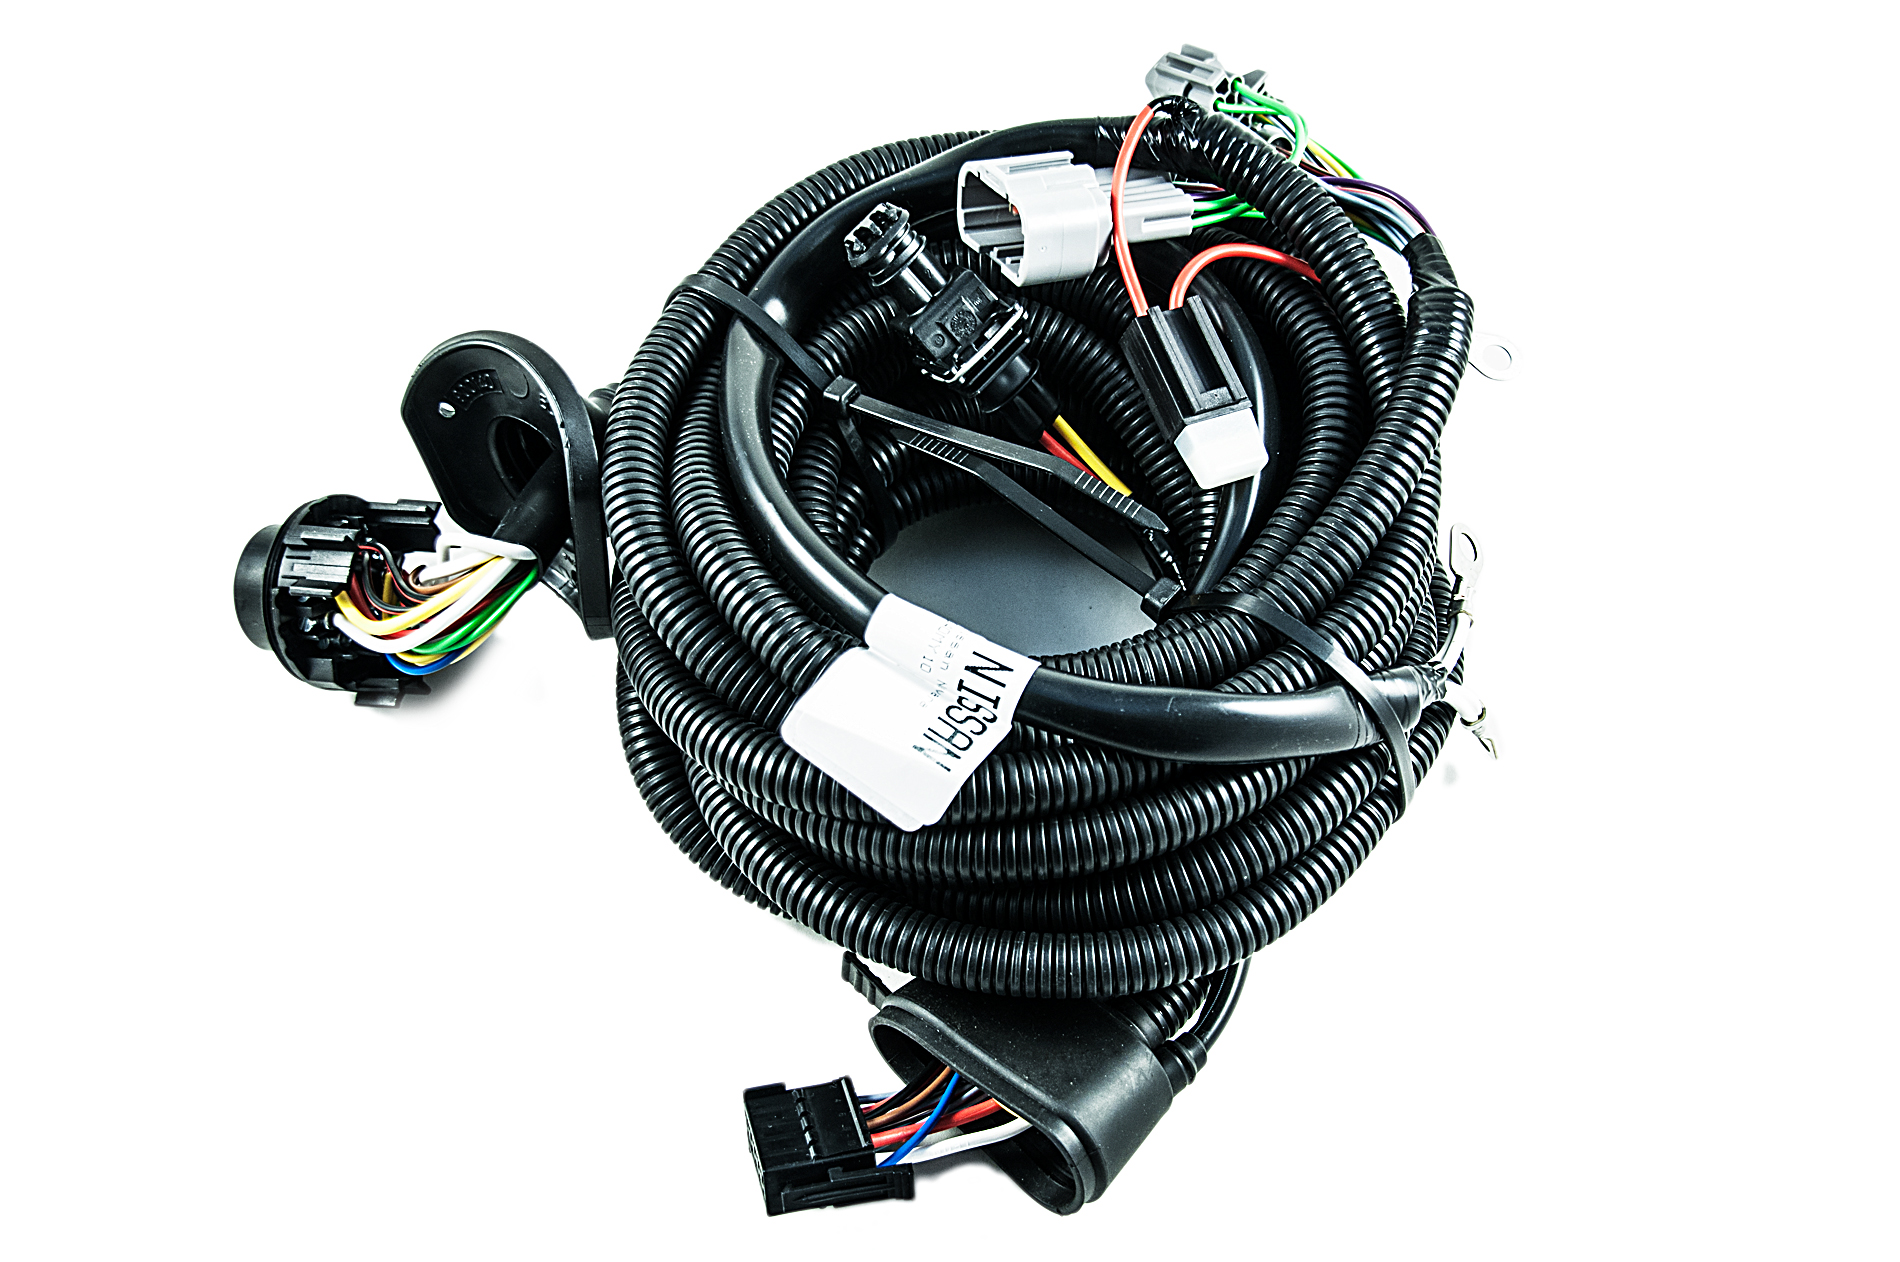 Nissan navara d40 abs wiring diagram the best wiring diagram 2017 nissan genuine navara electrical kit wiring for towbar hitch 13pin cheapraybanclubmaster Gallery